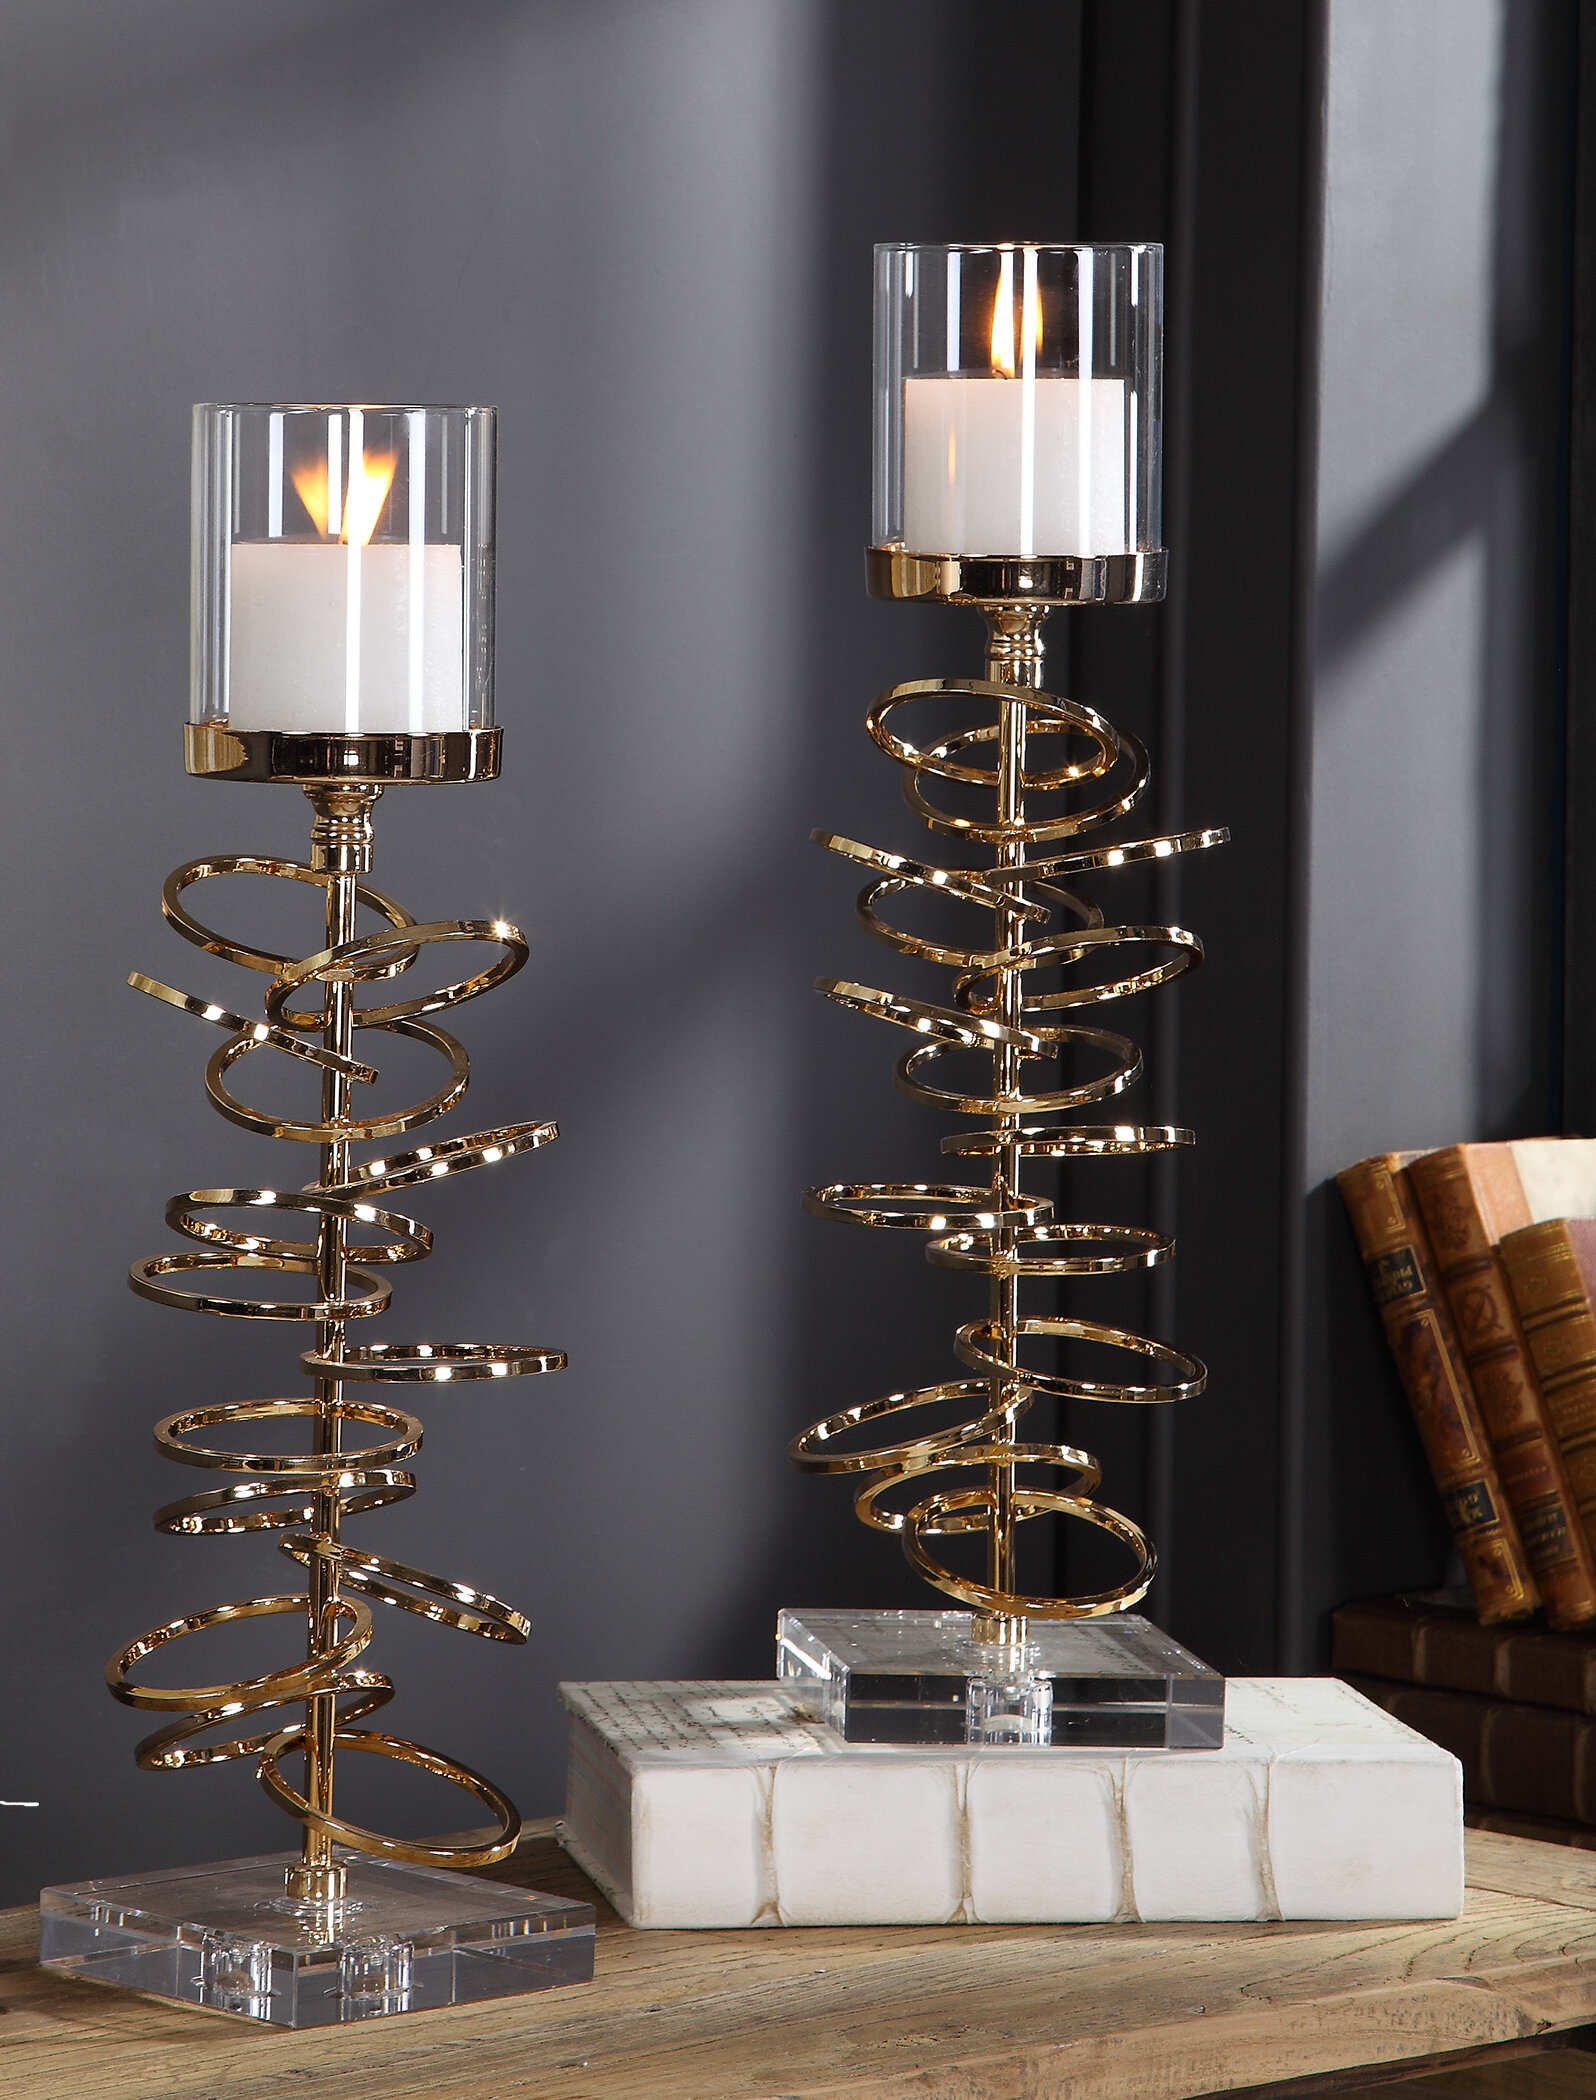 Only Us Iron Pillar Candle Holders Set Of 5 Gold Candlesticks For Fireplace Table Living Room Dinning Room Candelabra Decoration Modern Art With Geometric Shape Home Kitchen Home Decor